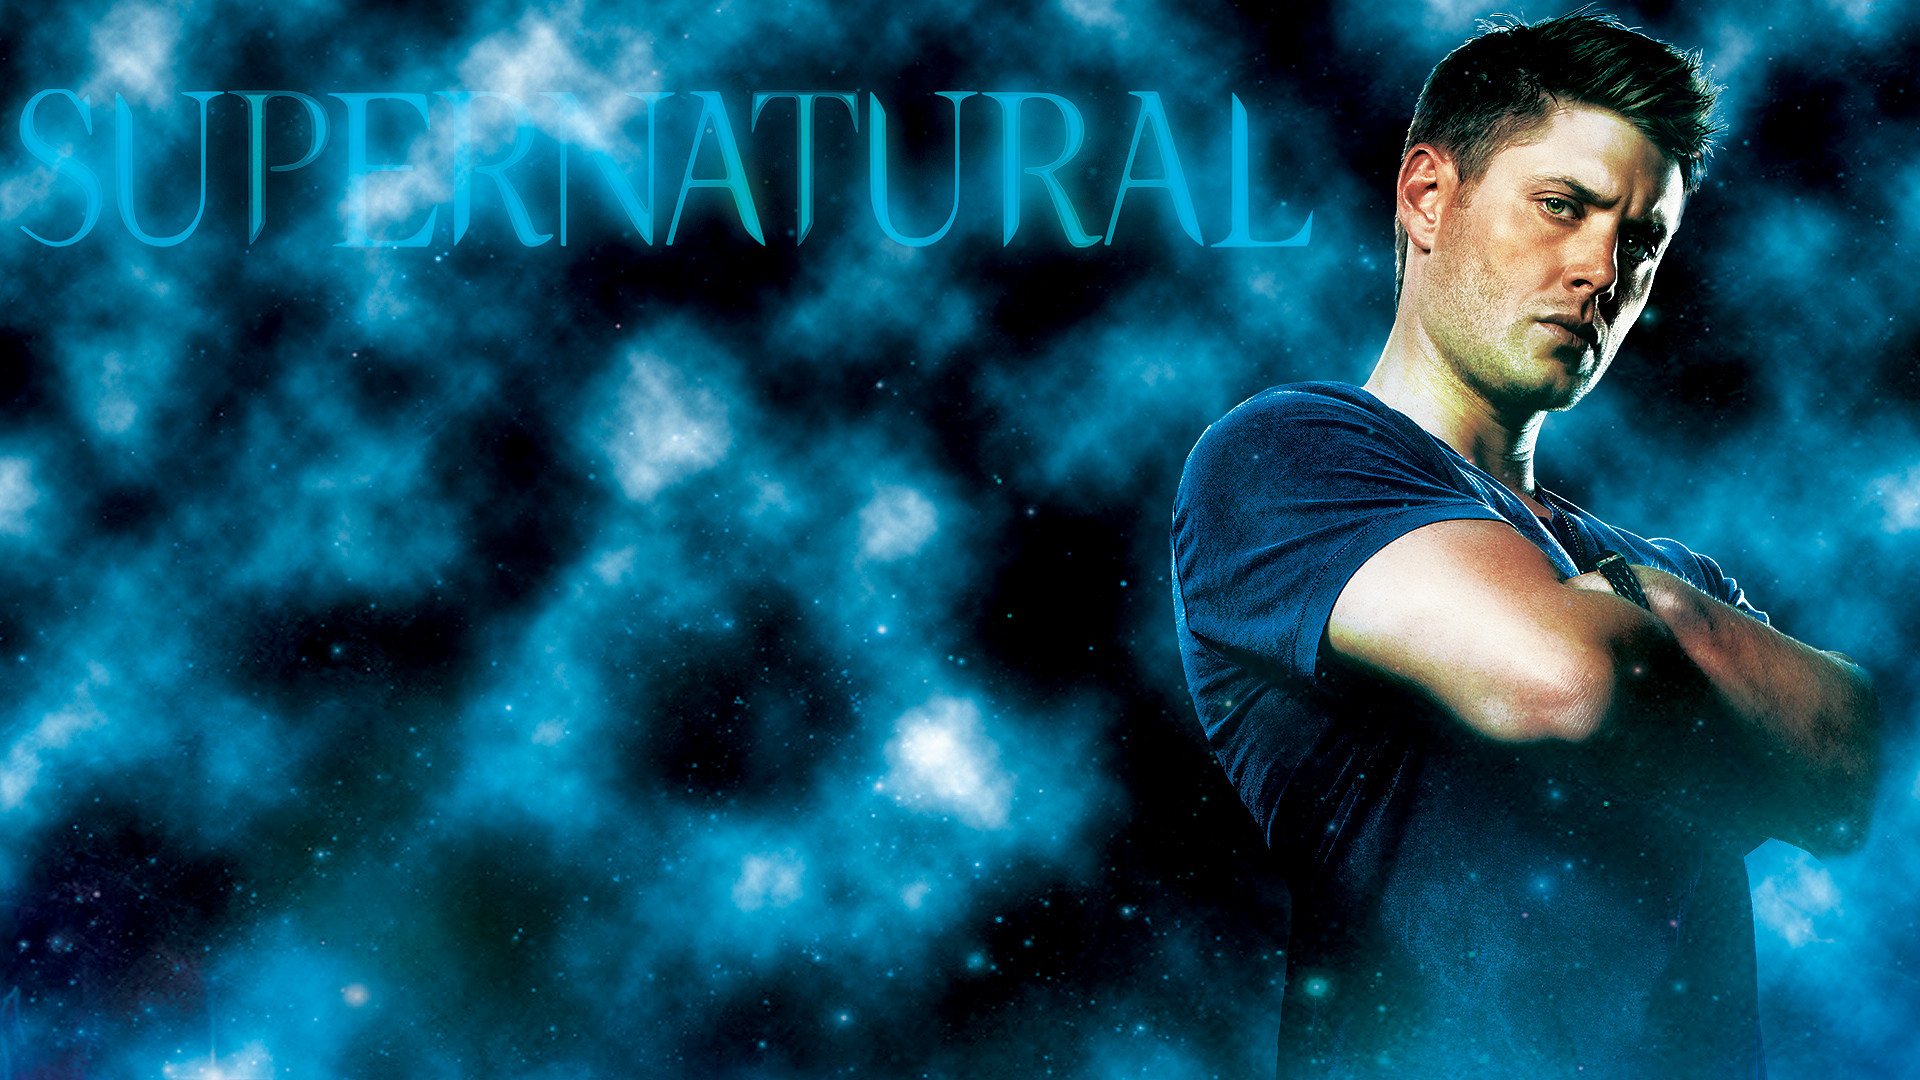 1920x1080 Supernatural: Dean Winchester by Nightfall1007 Supernatural: Dean Winchester  by Nightfall1007